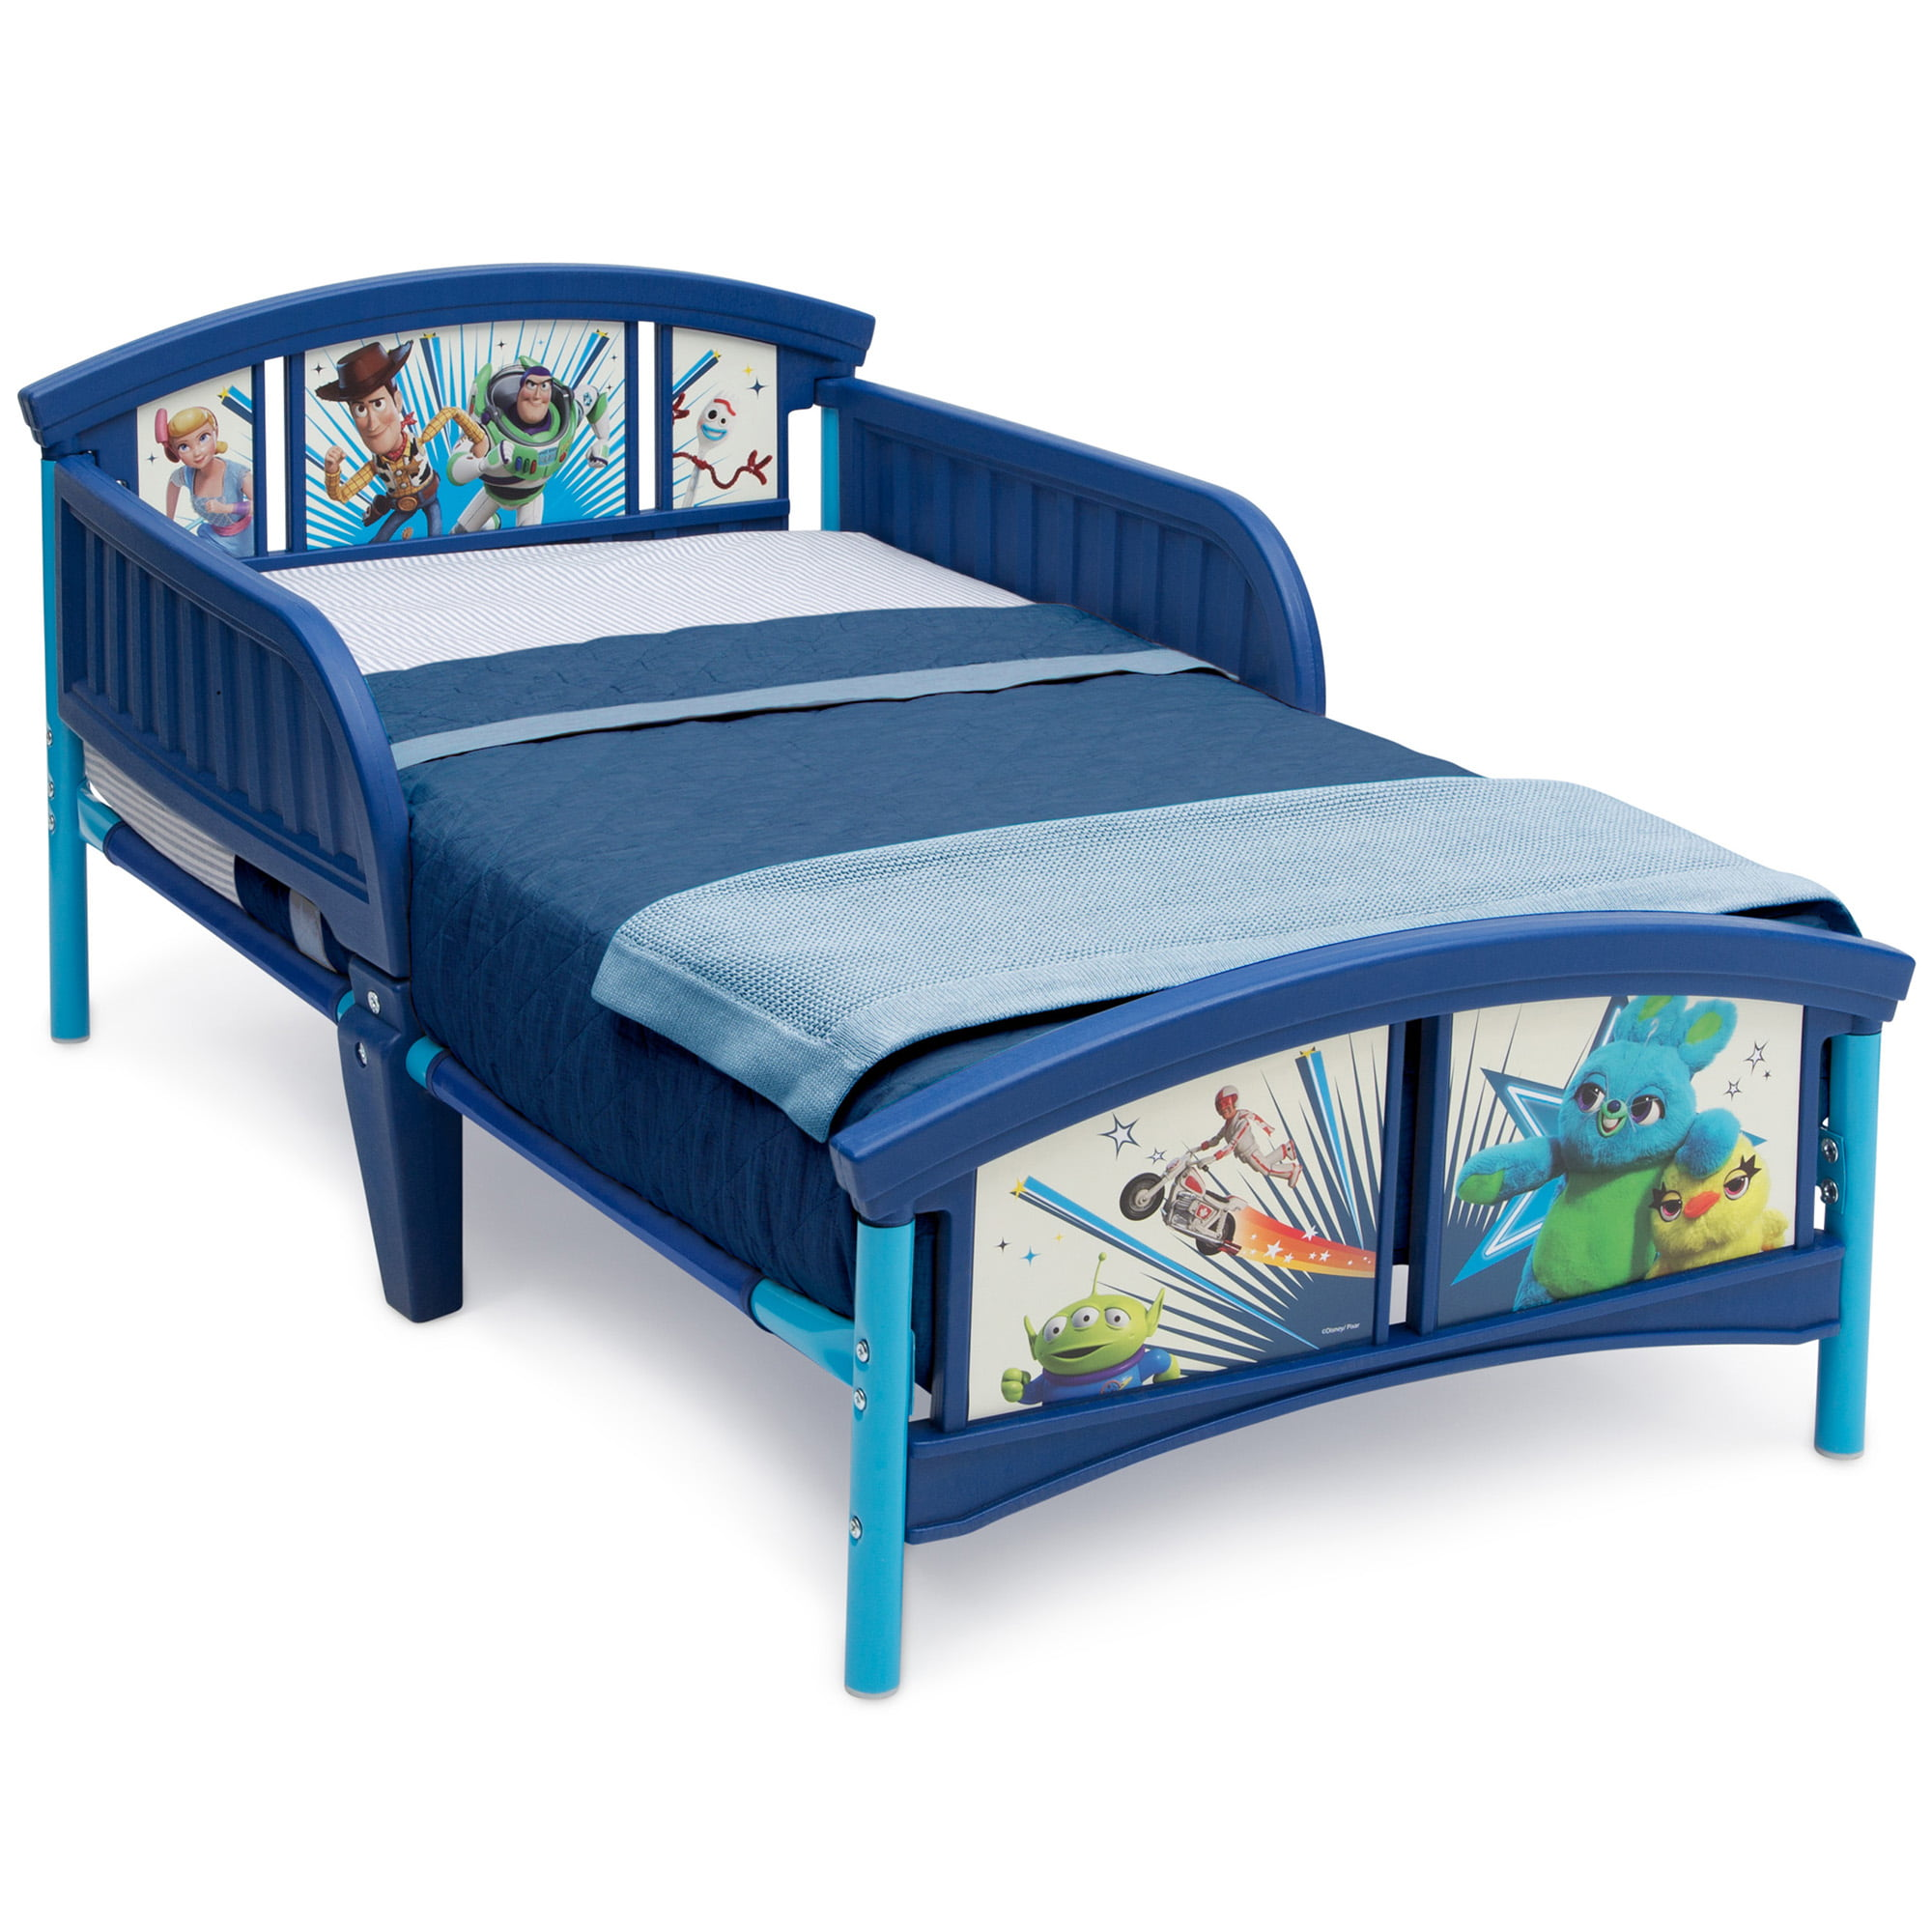 DC Super Friends Free Fast Delivery New Delta Children Plastic Toddler Bed